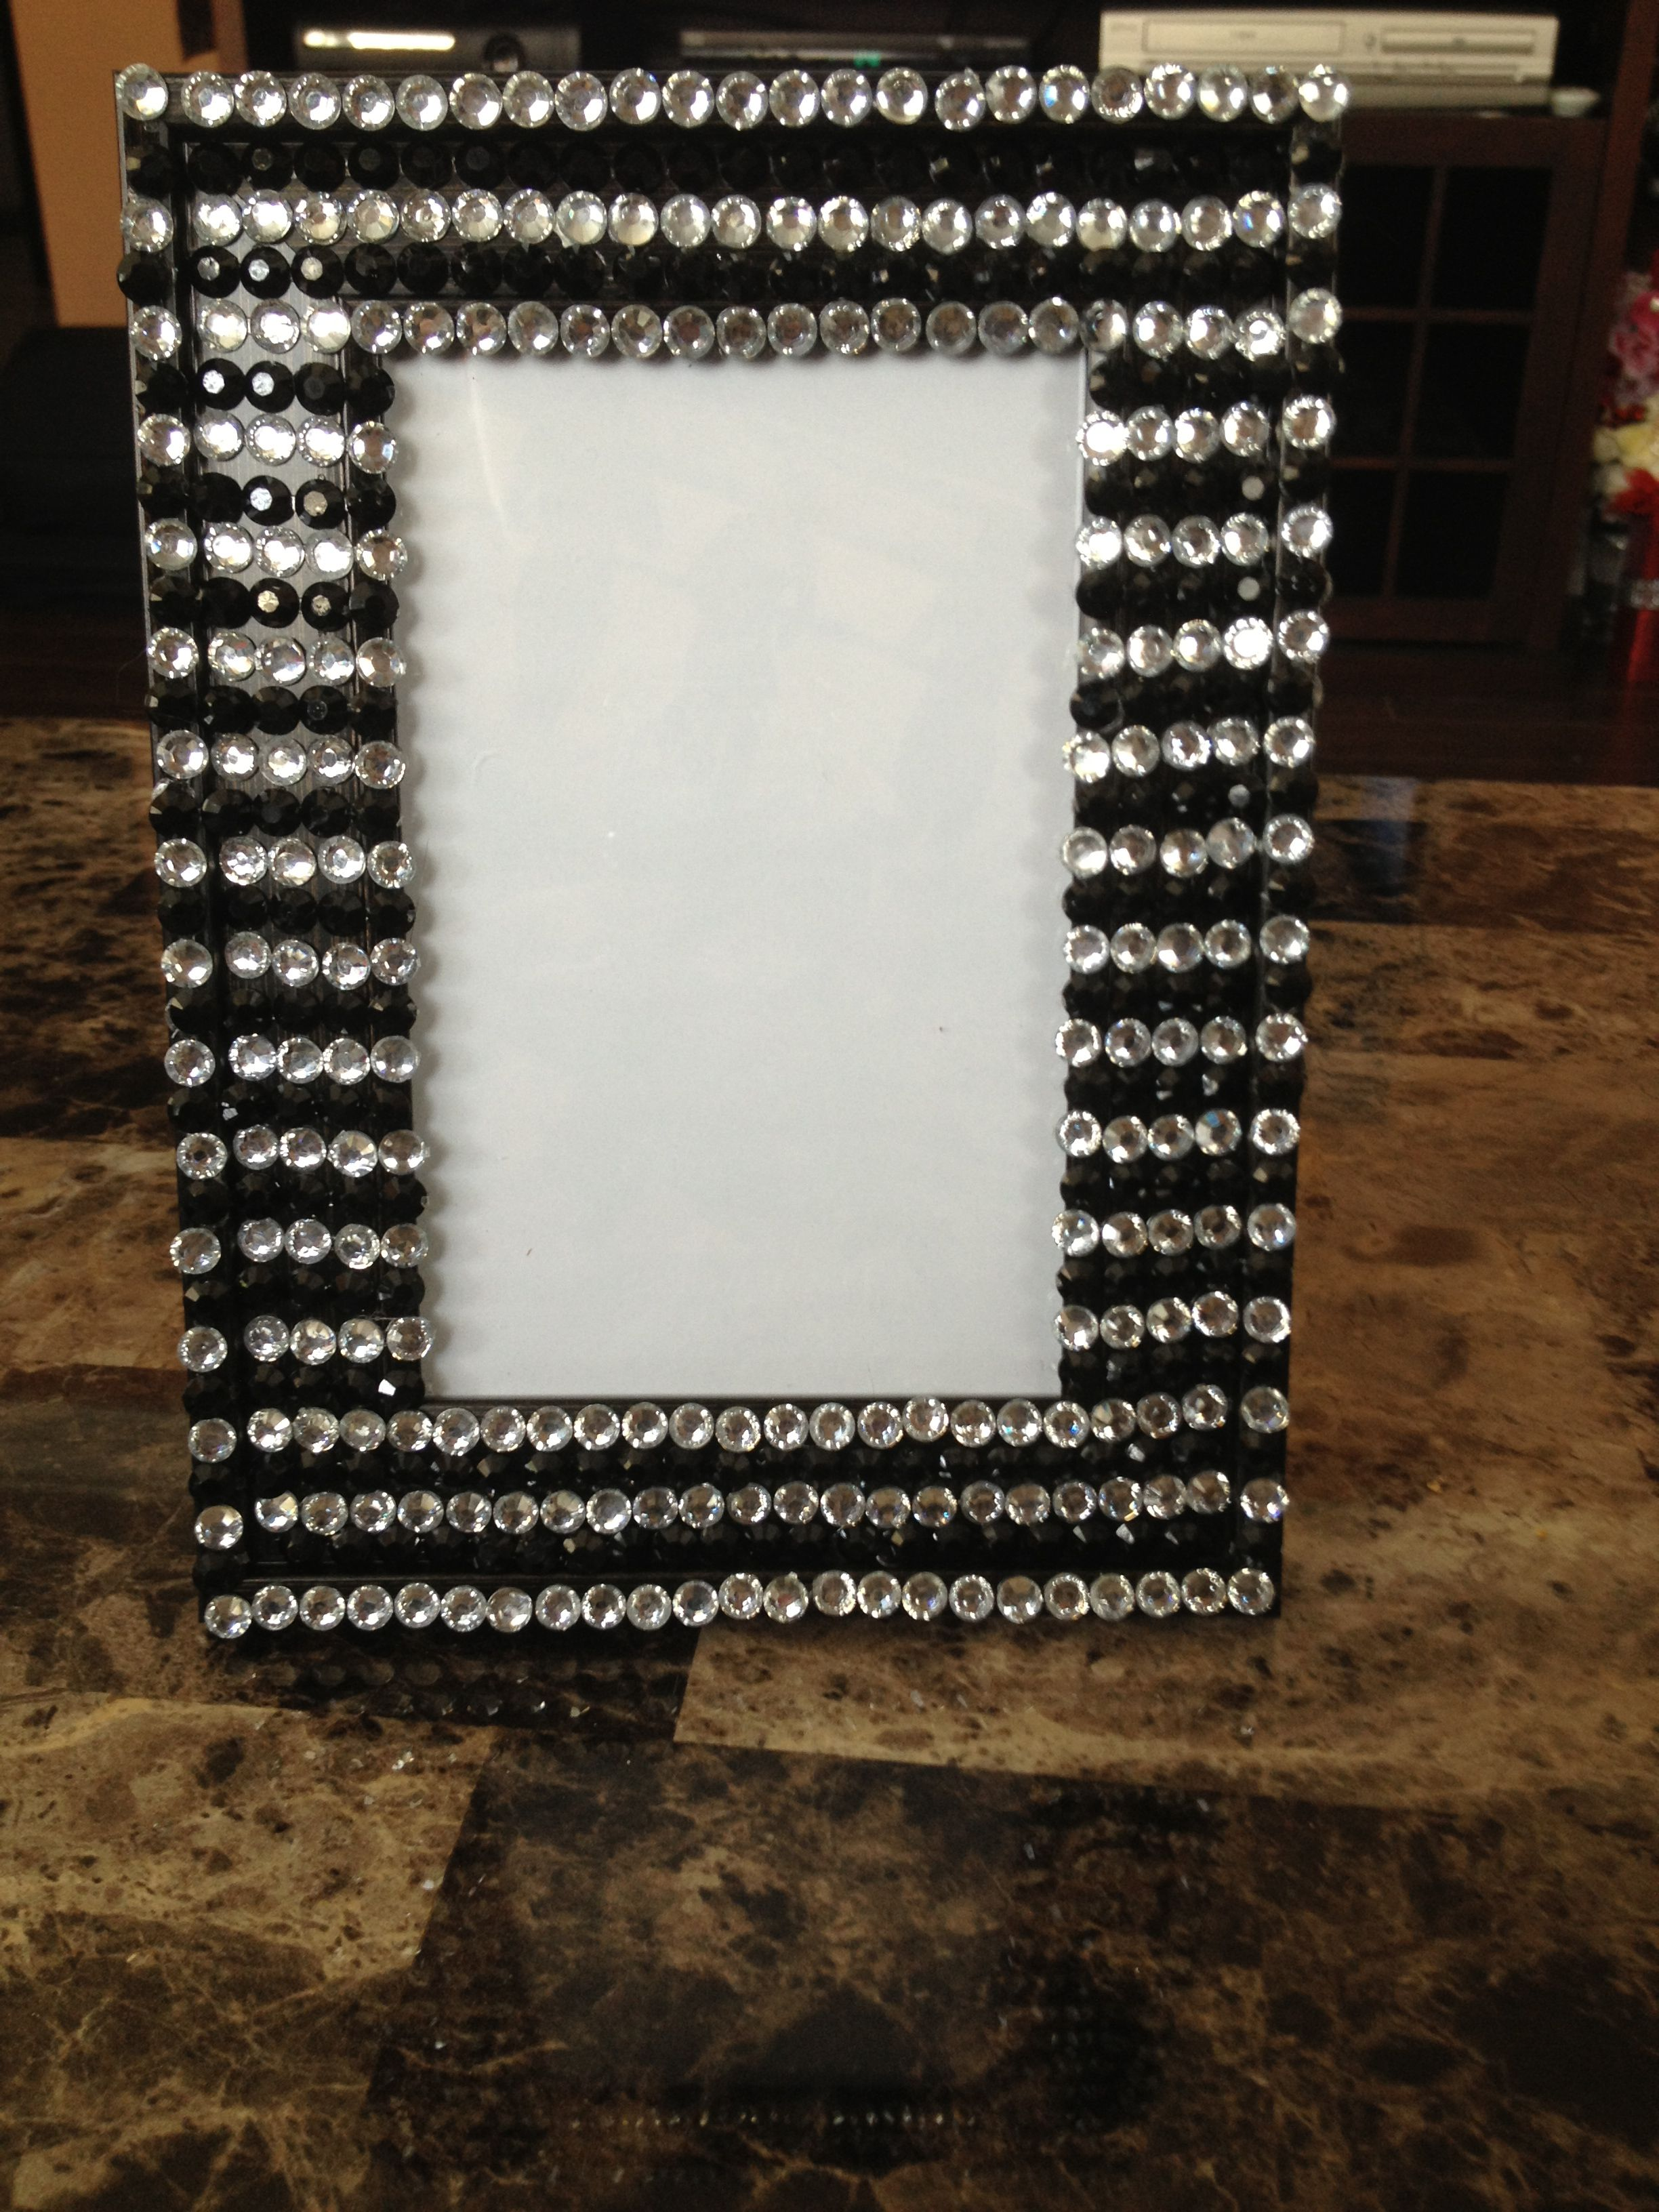 Black and white rhinestone picture frame bombiniere | Home decor ...